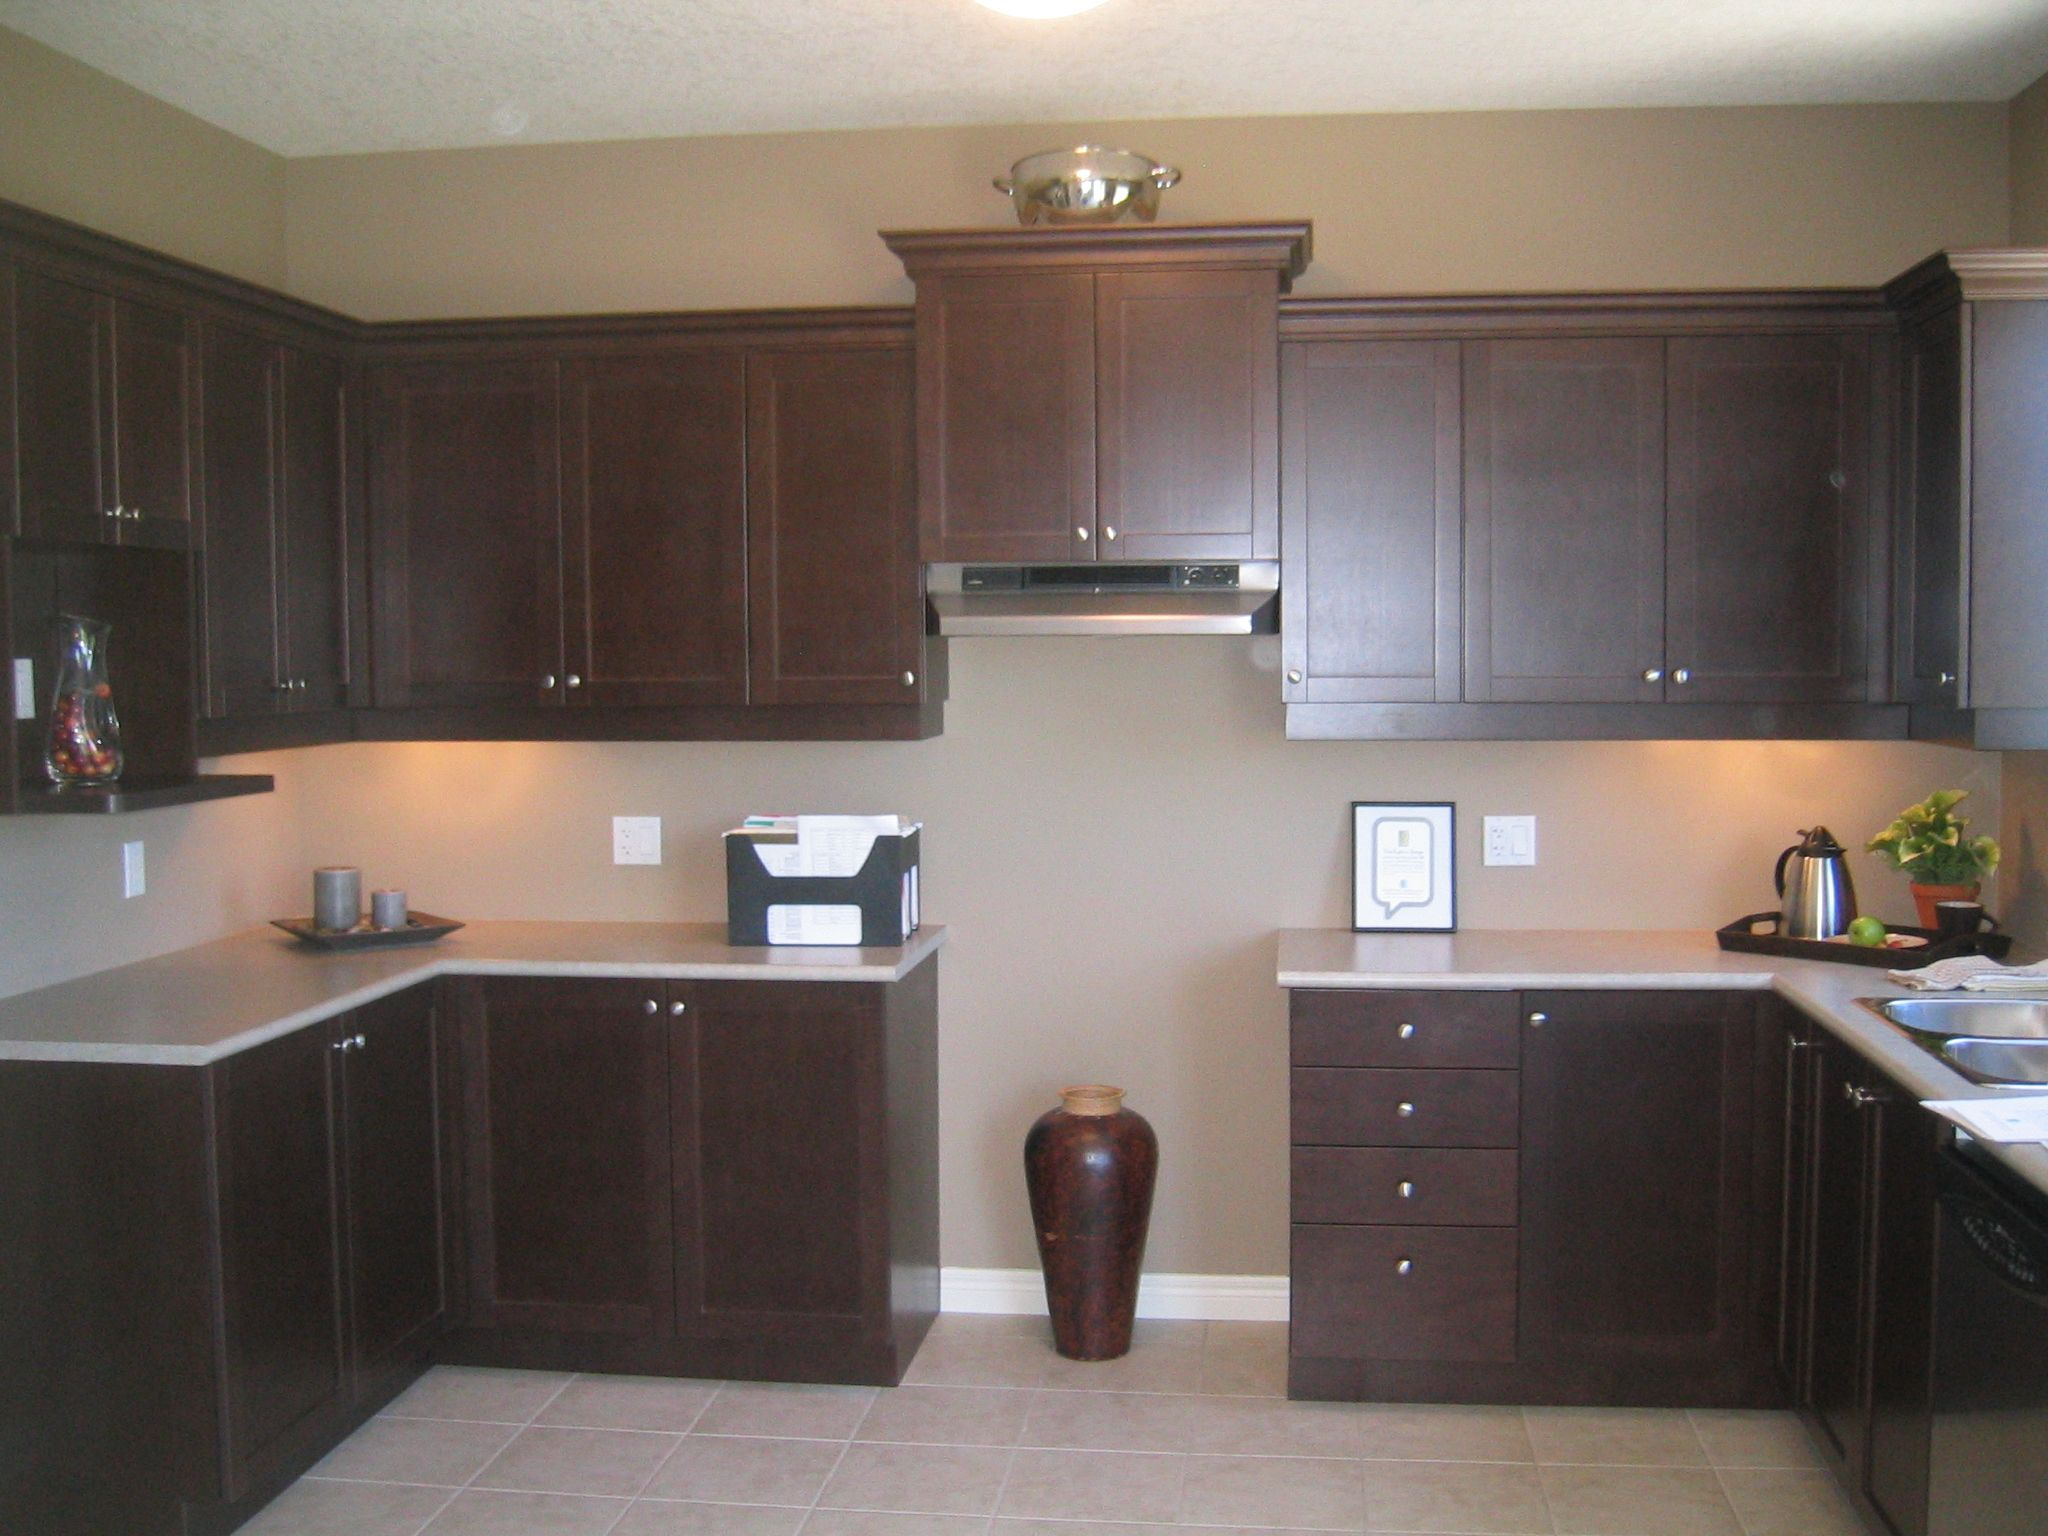 Colors For Kitchen Walls With White Cabinets What Color To Paint Kitchen Walls With Espresso Cabinets